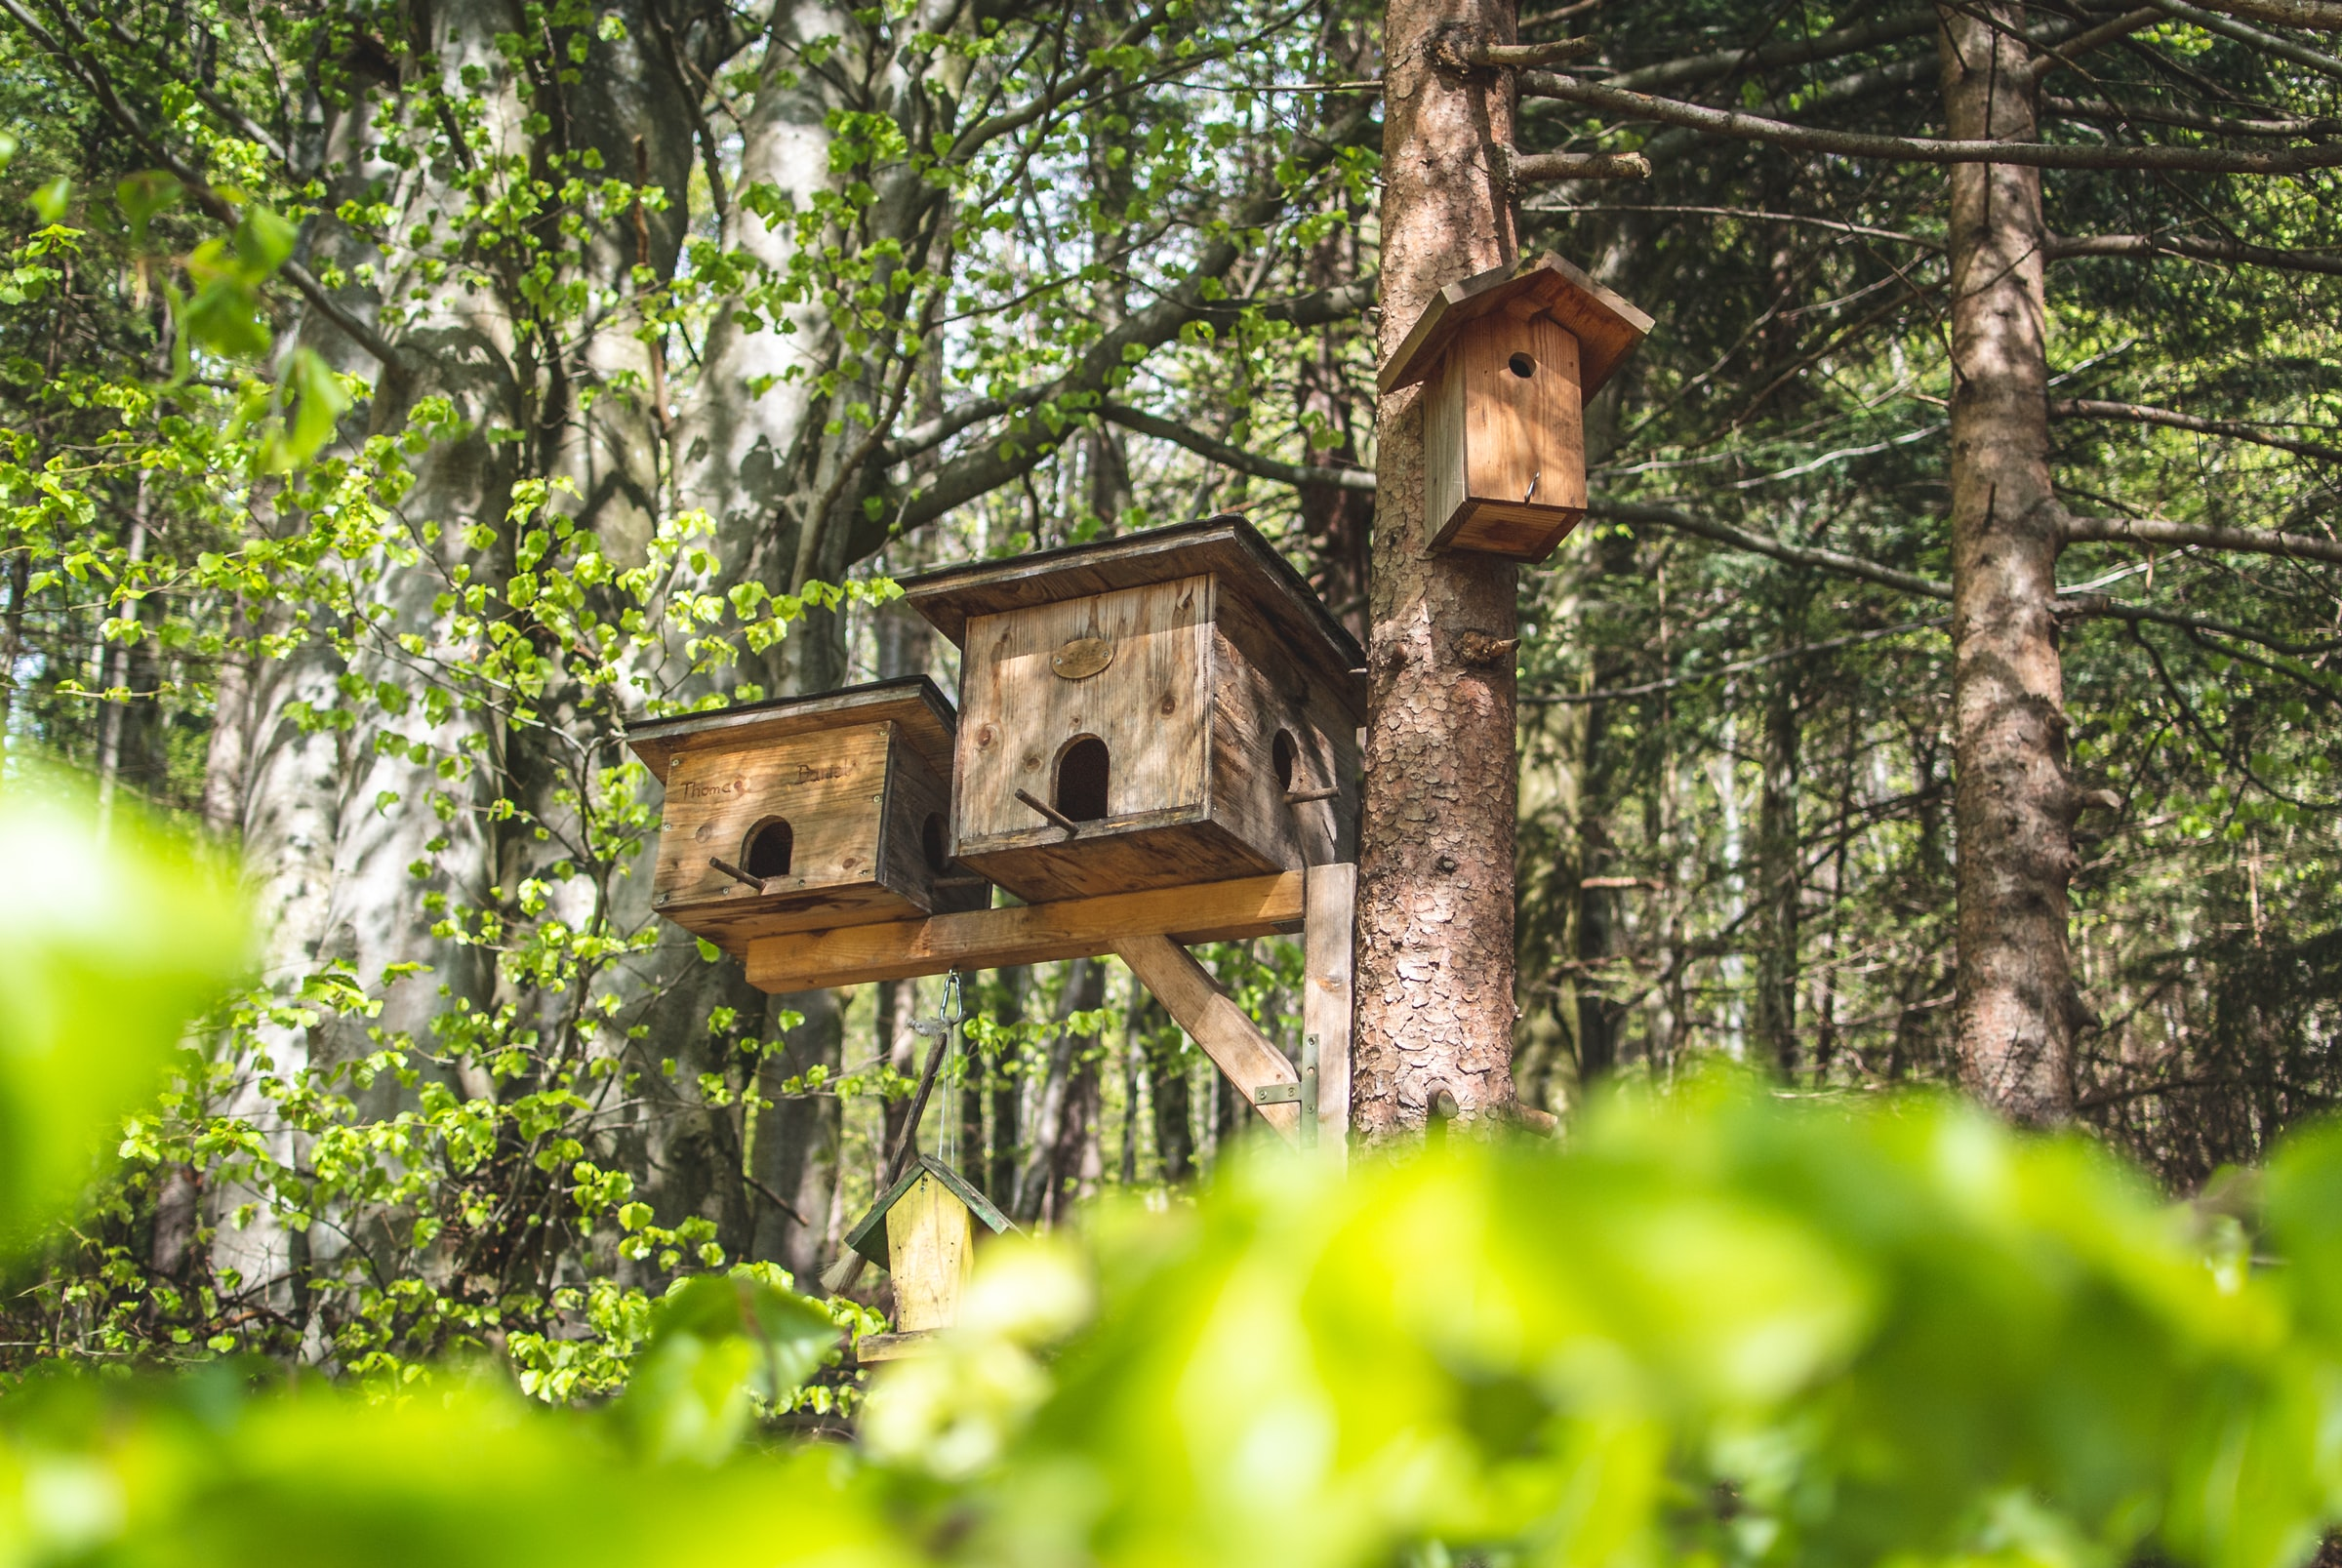 Three birdhouses on one tree in a wooded area